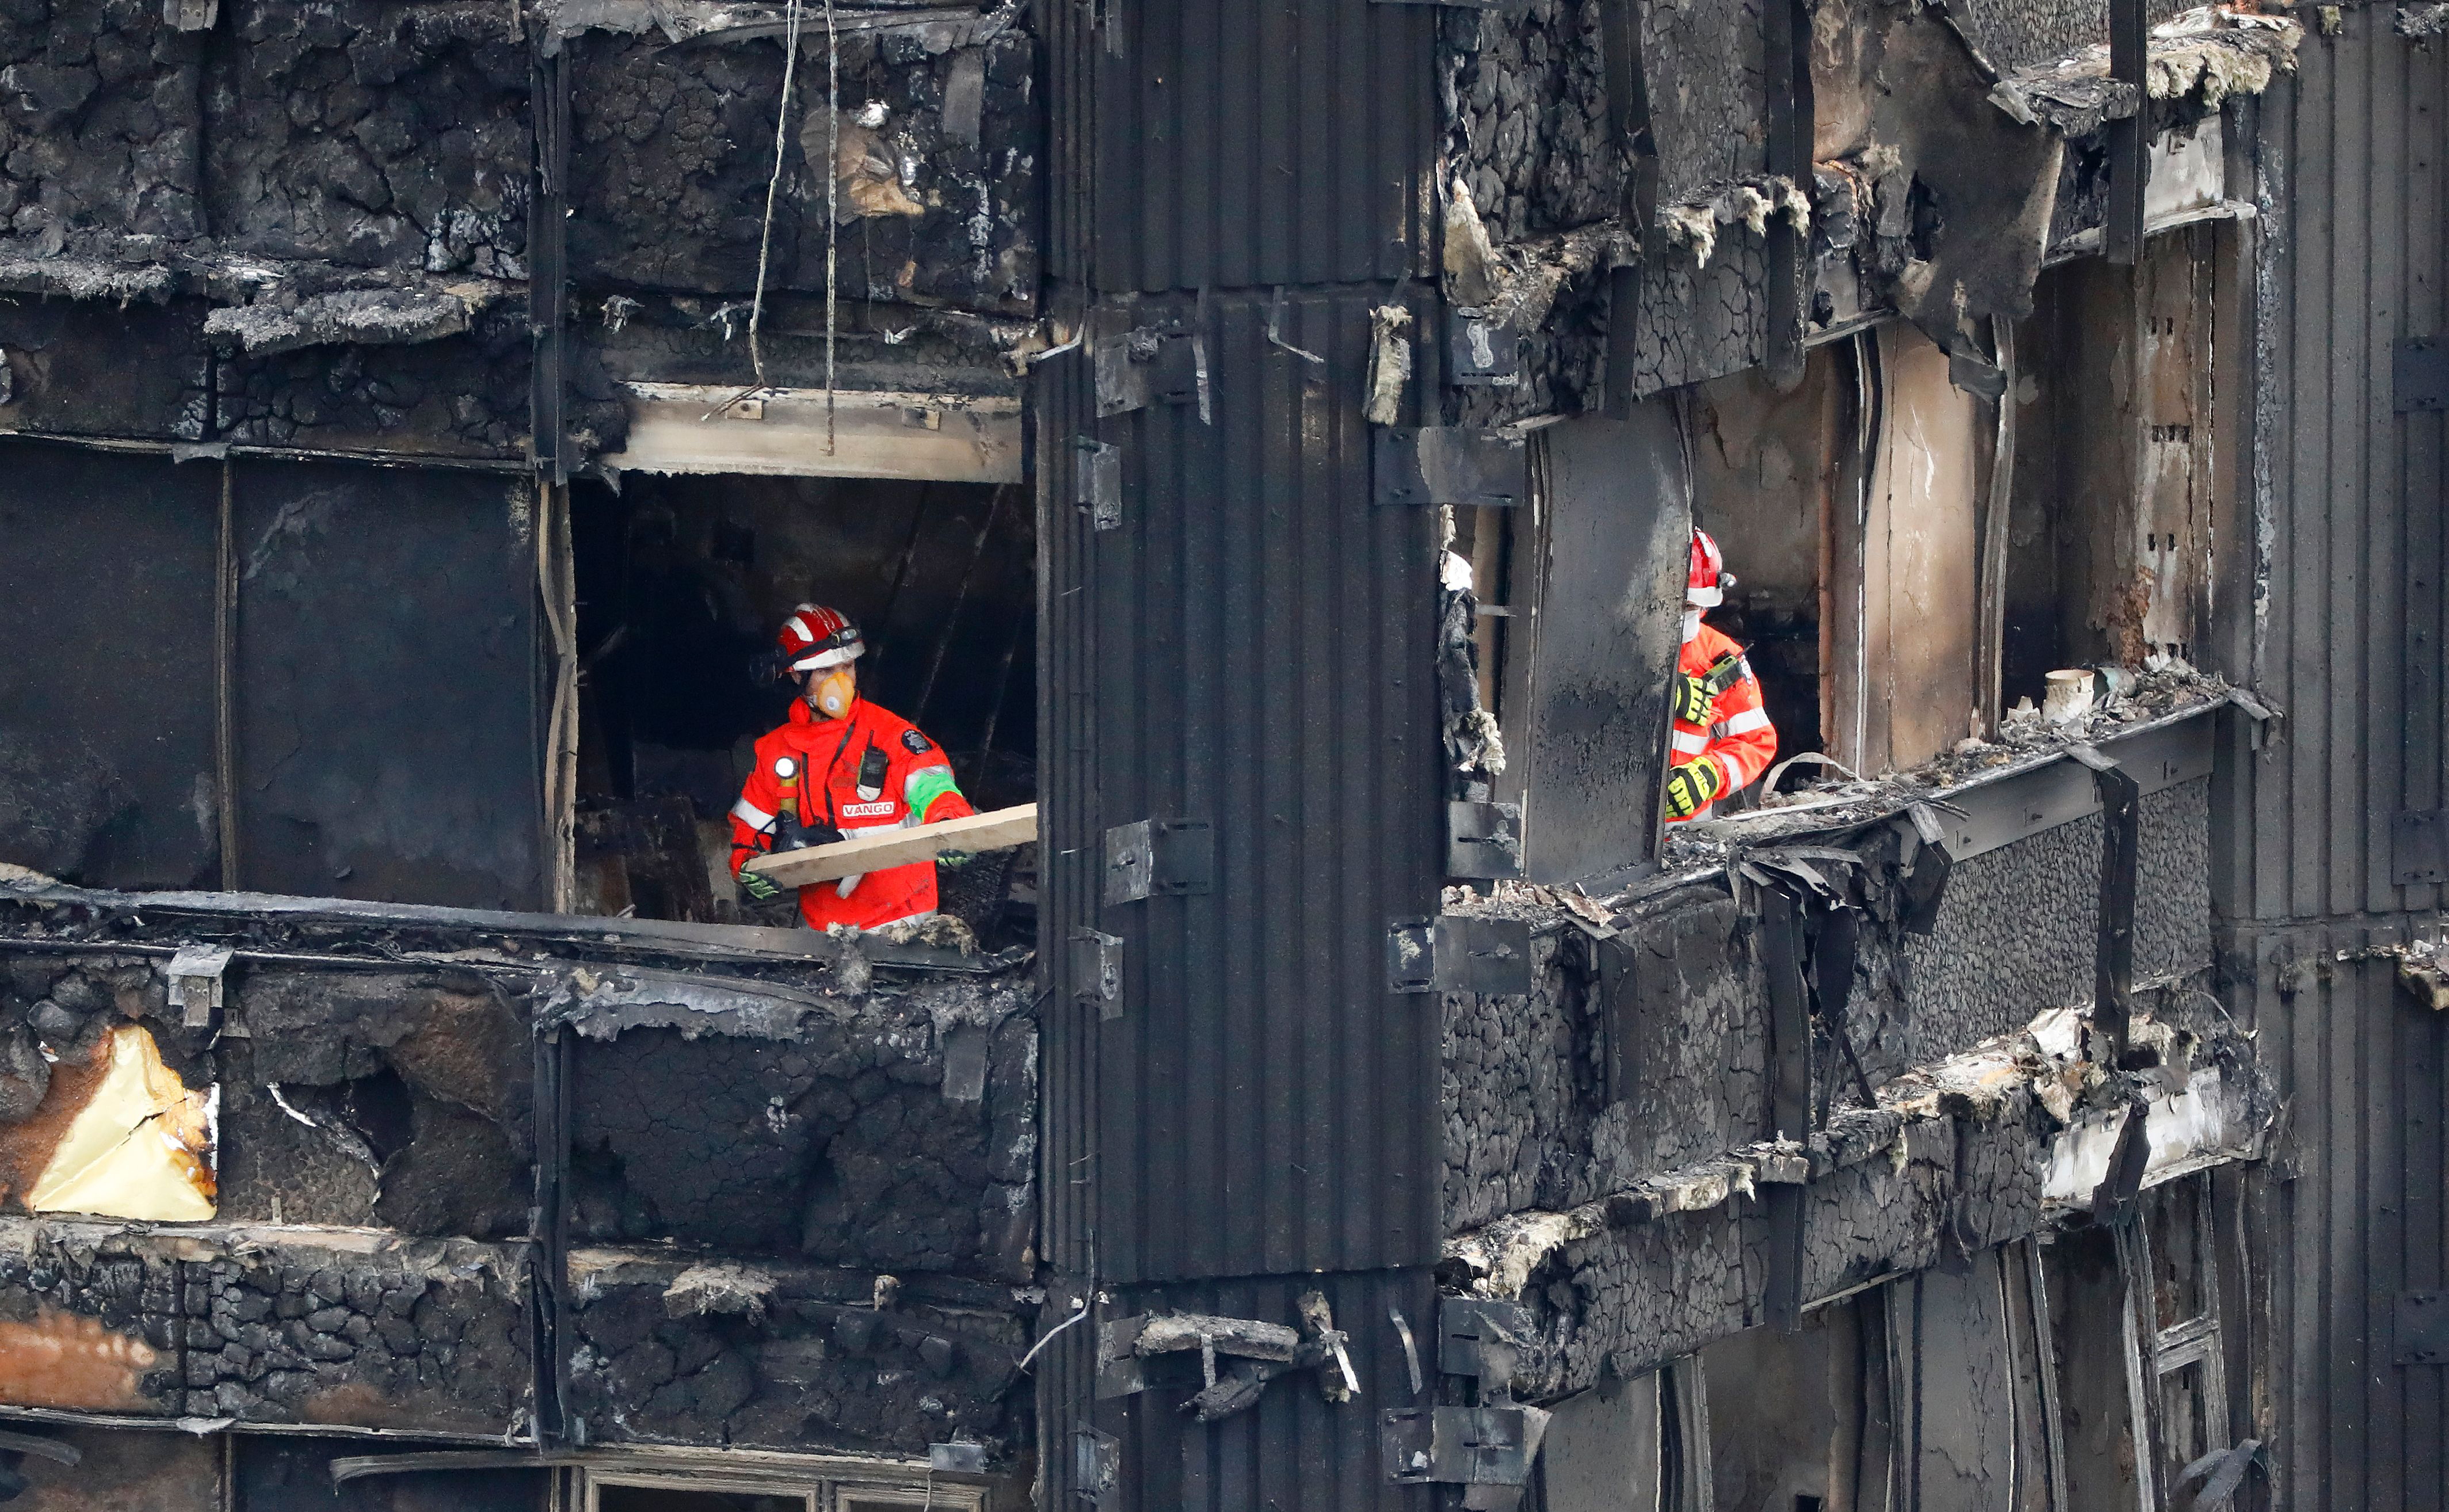 Members of the emergency services work on the middle floors of the charred remnains of the Grenfell Tower block in Kensington, west London